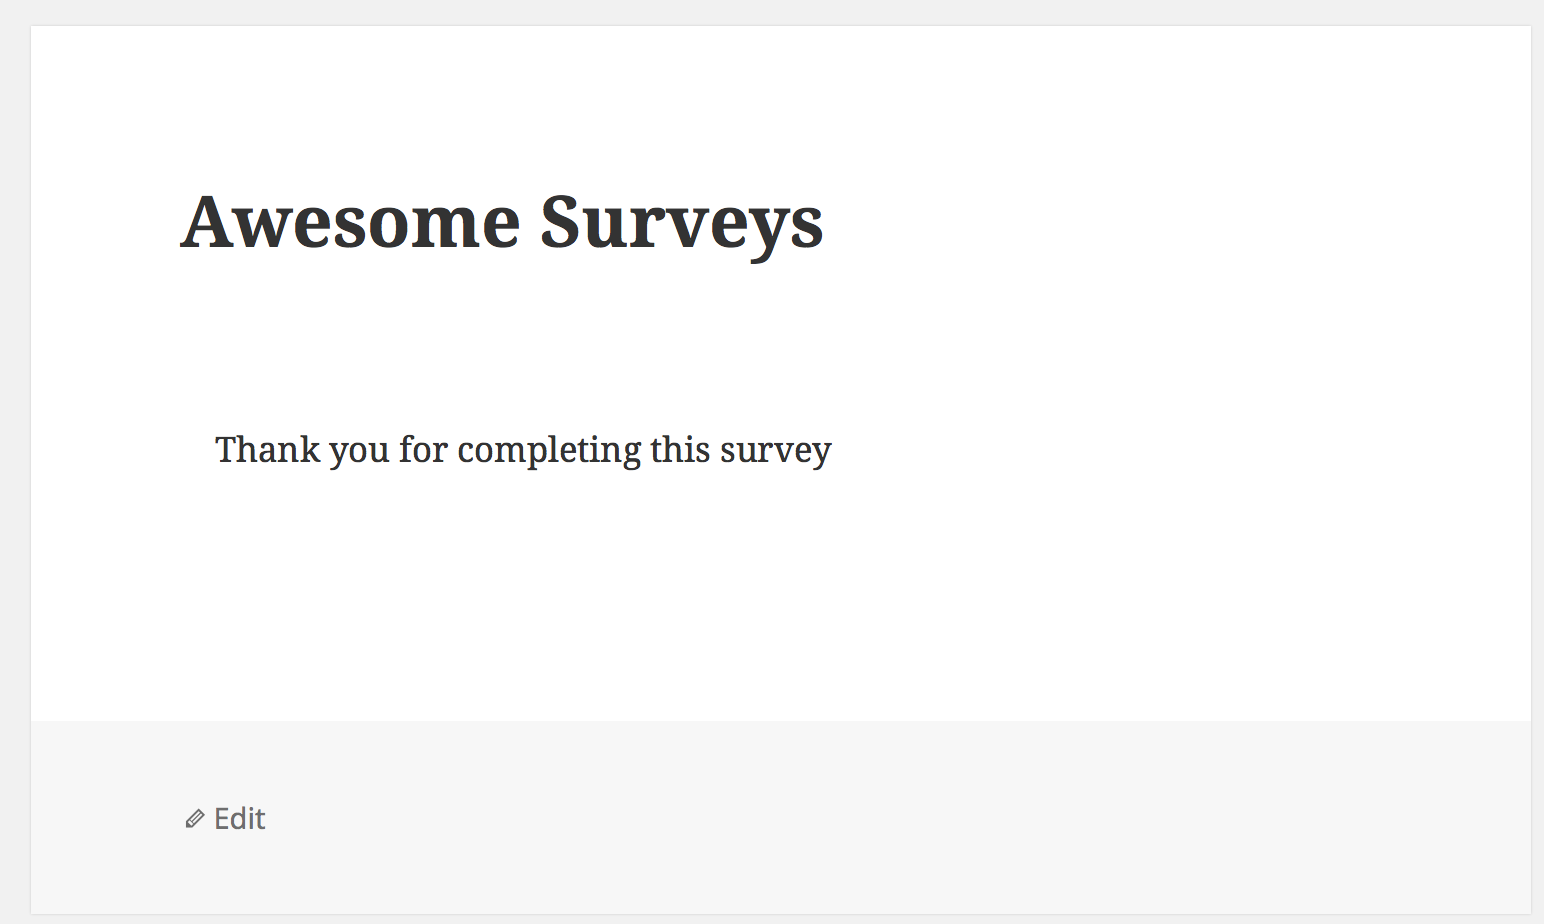 The thank you message displayed after the survey has been submitted